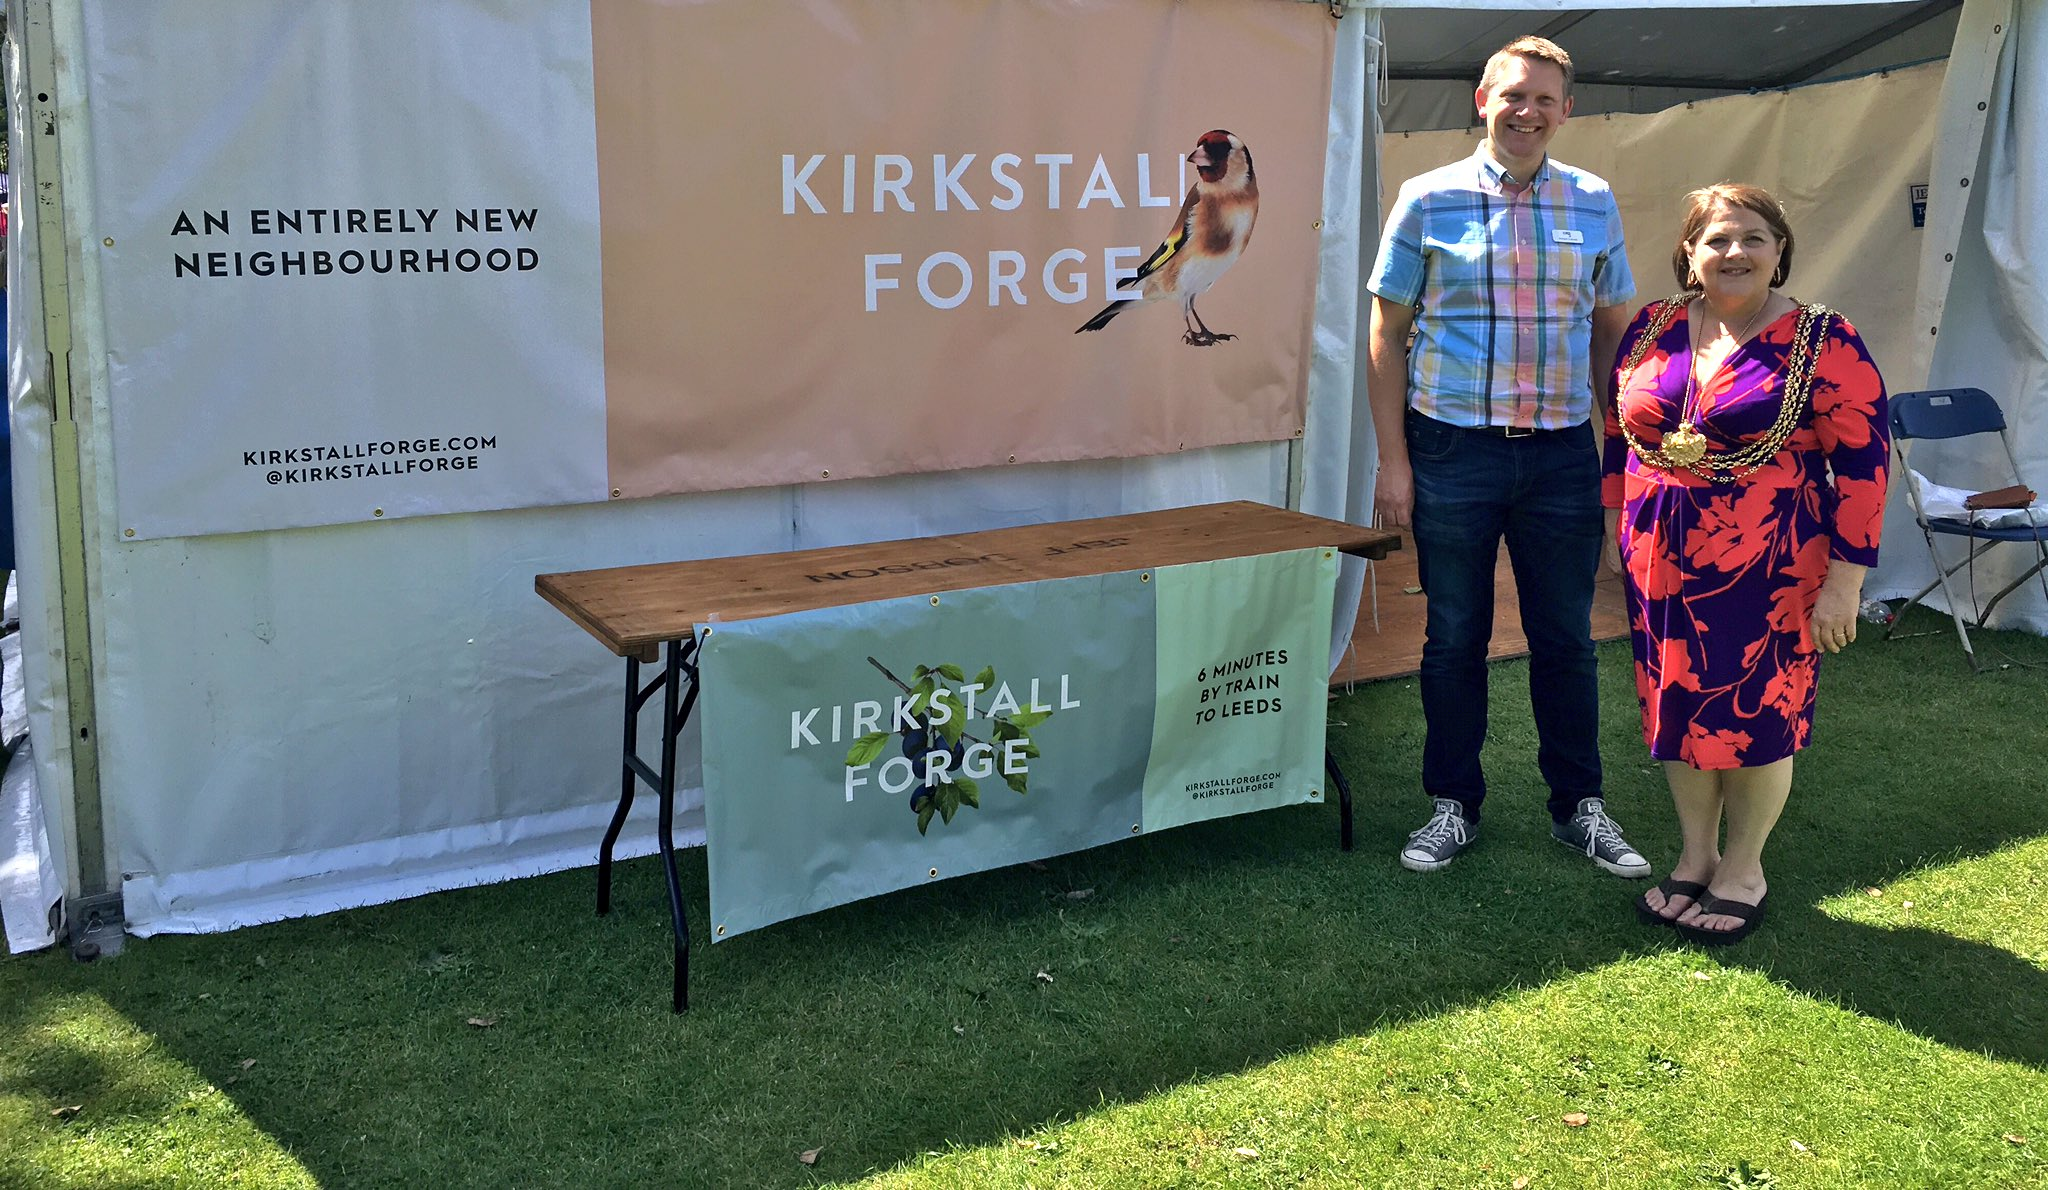 We had a lovely Saturday in the sunshine at @KirkFest with @CllrJaneDowson #KirkstallForge https://t.co/Zcq5bqMVX3